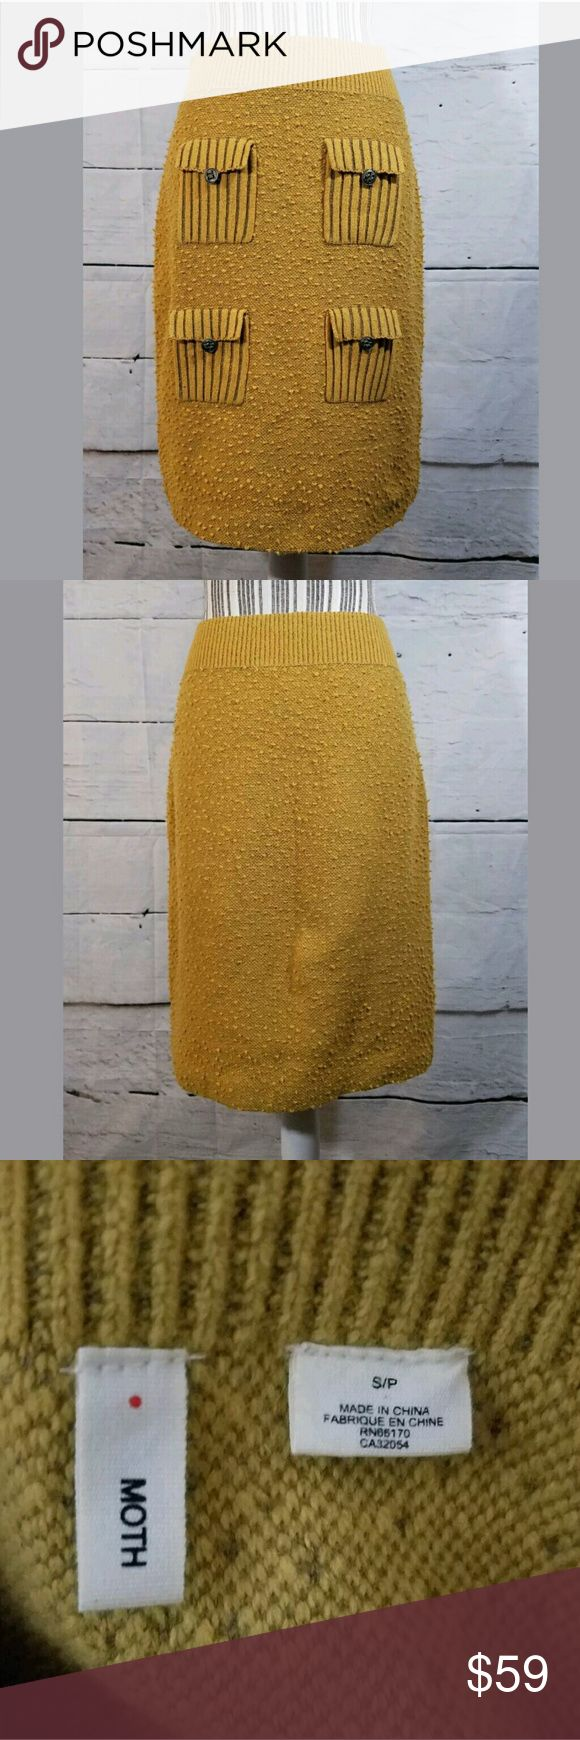 Anthropologie Moth Mustard Yellow Skirt Anthropologie Moth Mustard Yellow Skirt Pockets Wool Blend Small  Excellent used condition.   29 inch waist.  40 inch hips.  22.5 inches long.    LB Anthropologie Skirts Pencil